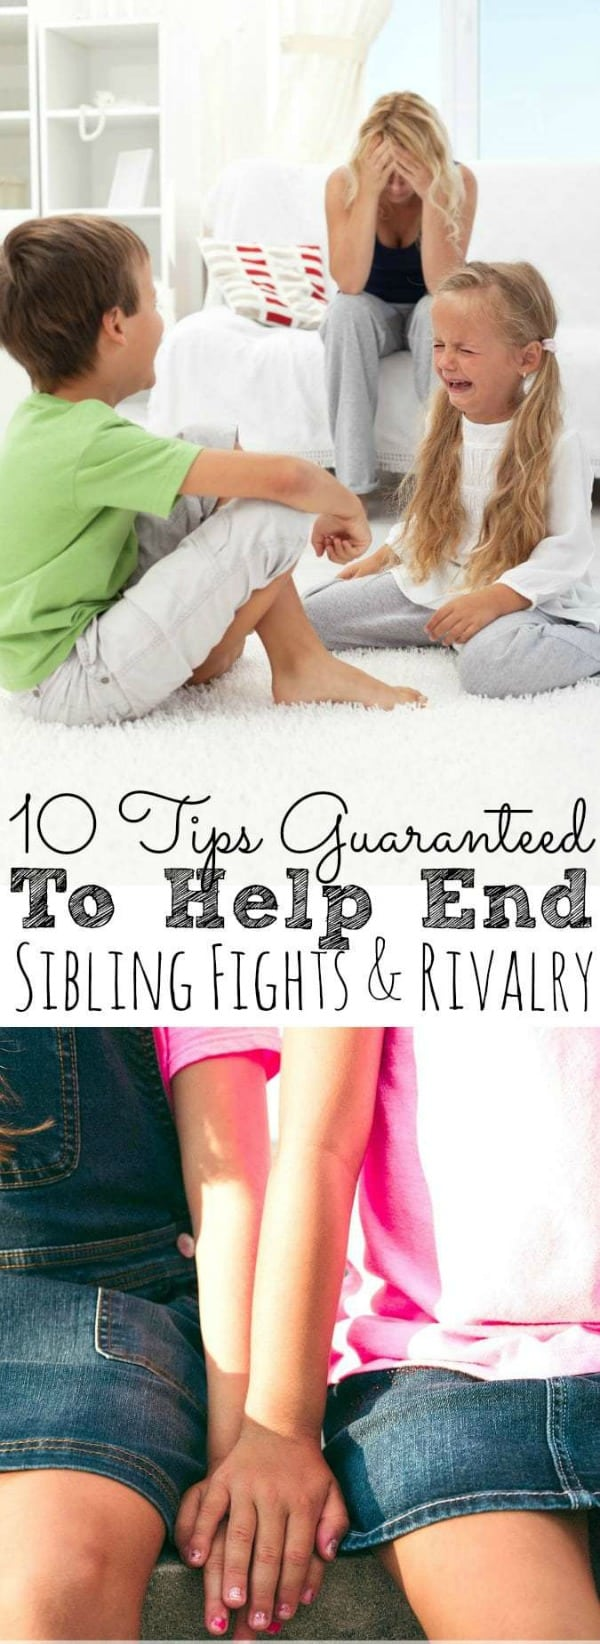 10 Tips to Guaranteed To Help End Sibling Fighting